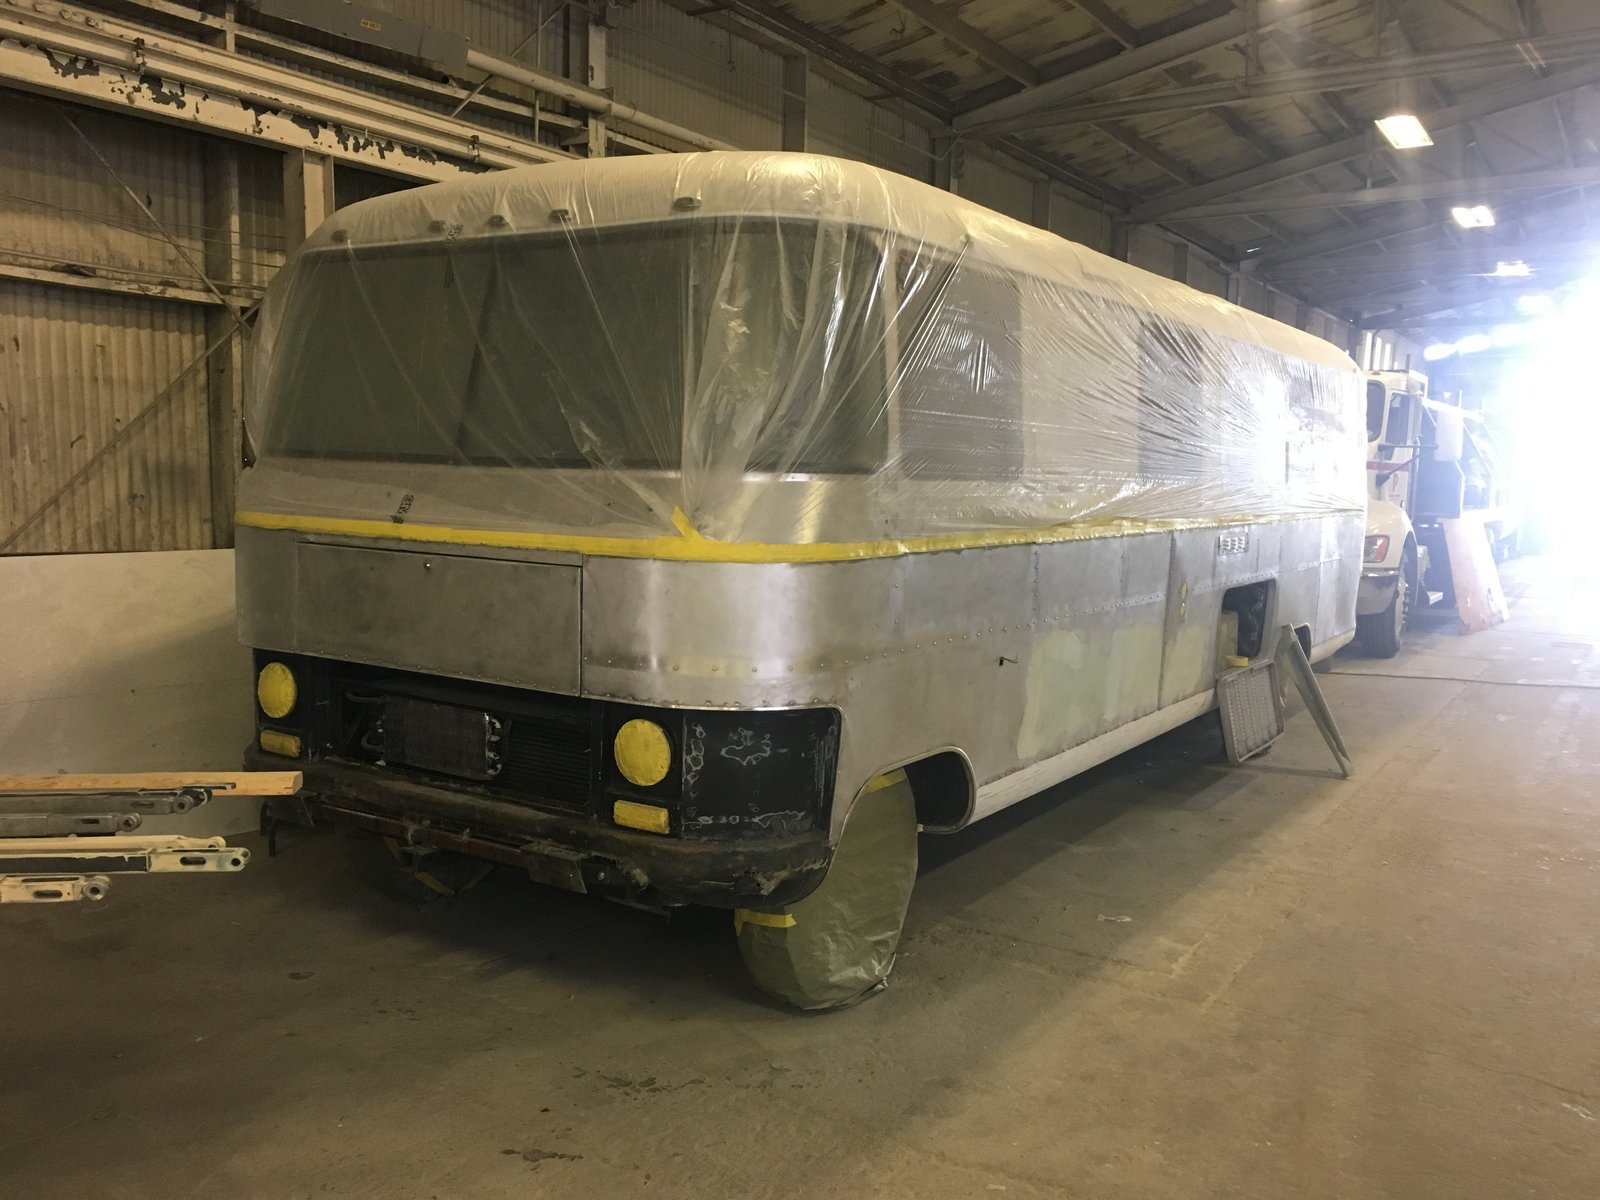 "Modern home with Shed & Studio. Here's the lower section body work well underway at Fleet BodyWorx in San Jose, CA. Photo 3 of Flatnose Frank: Our Renovated Vintage RevCon Motorhome (""Is that an Airstream?"")"